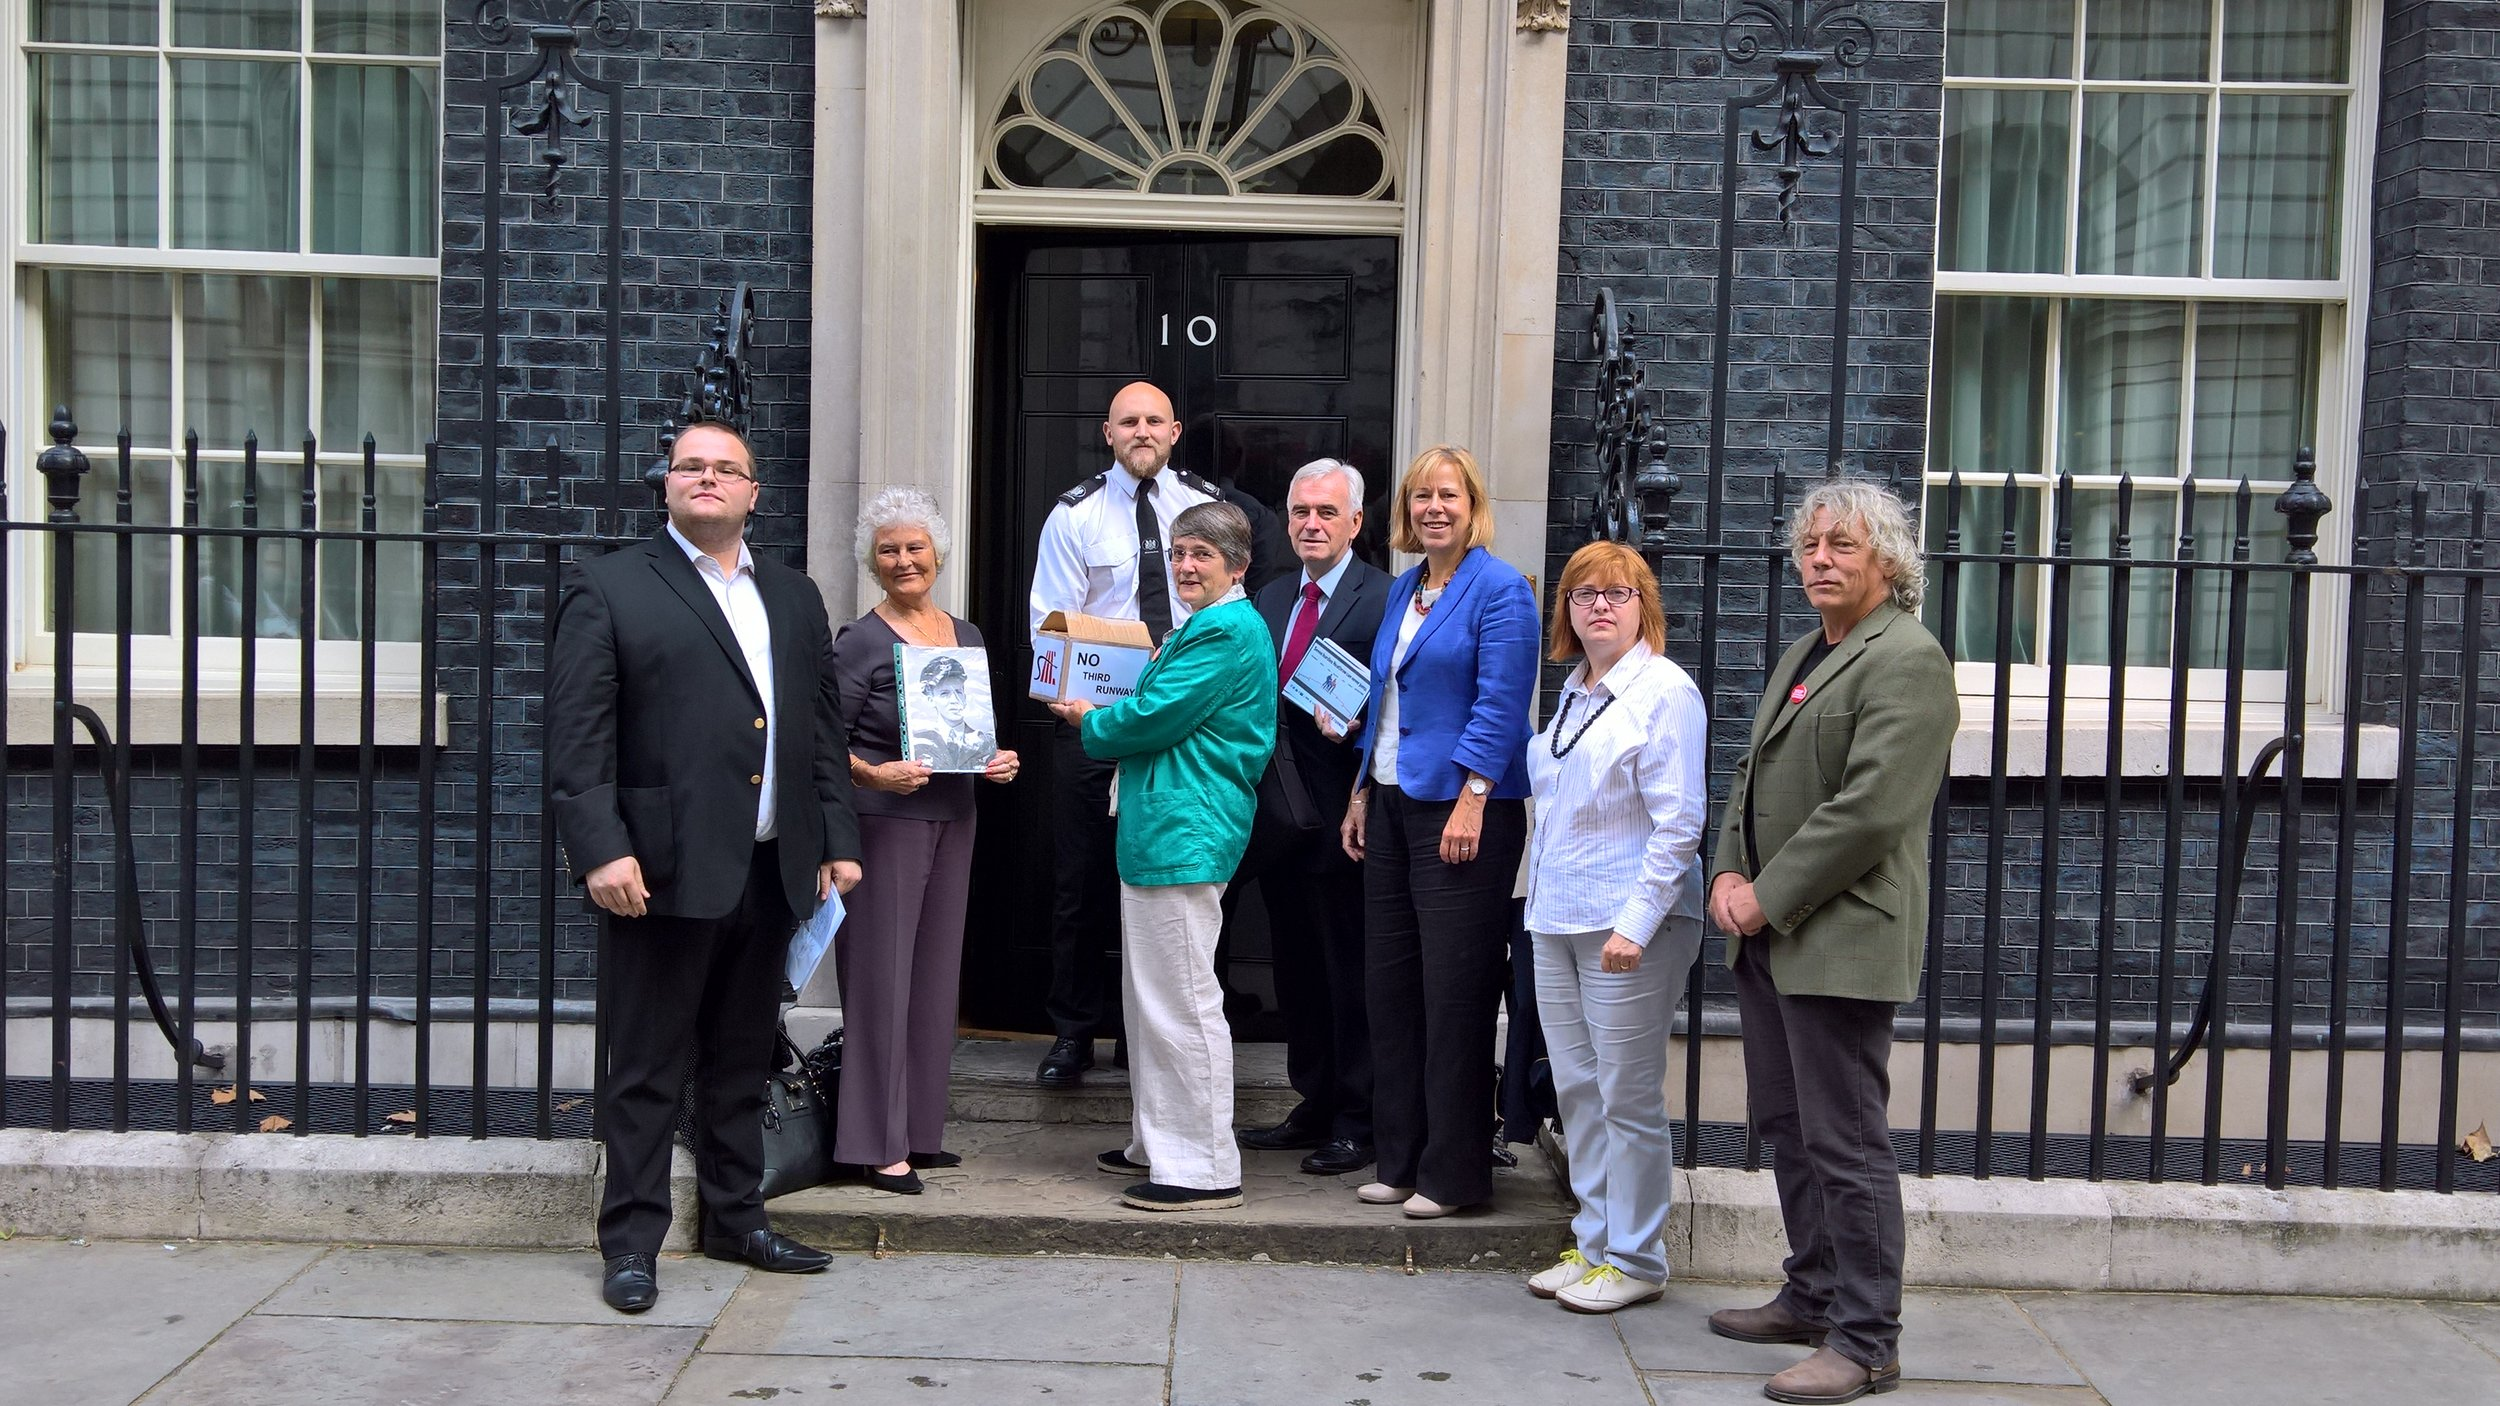 Campaign and residents with John McDonnell MP and Ruth Cadbury MP at 10 Downing Street, 12 Sep 2016